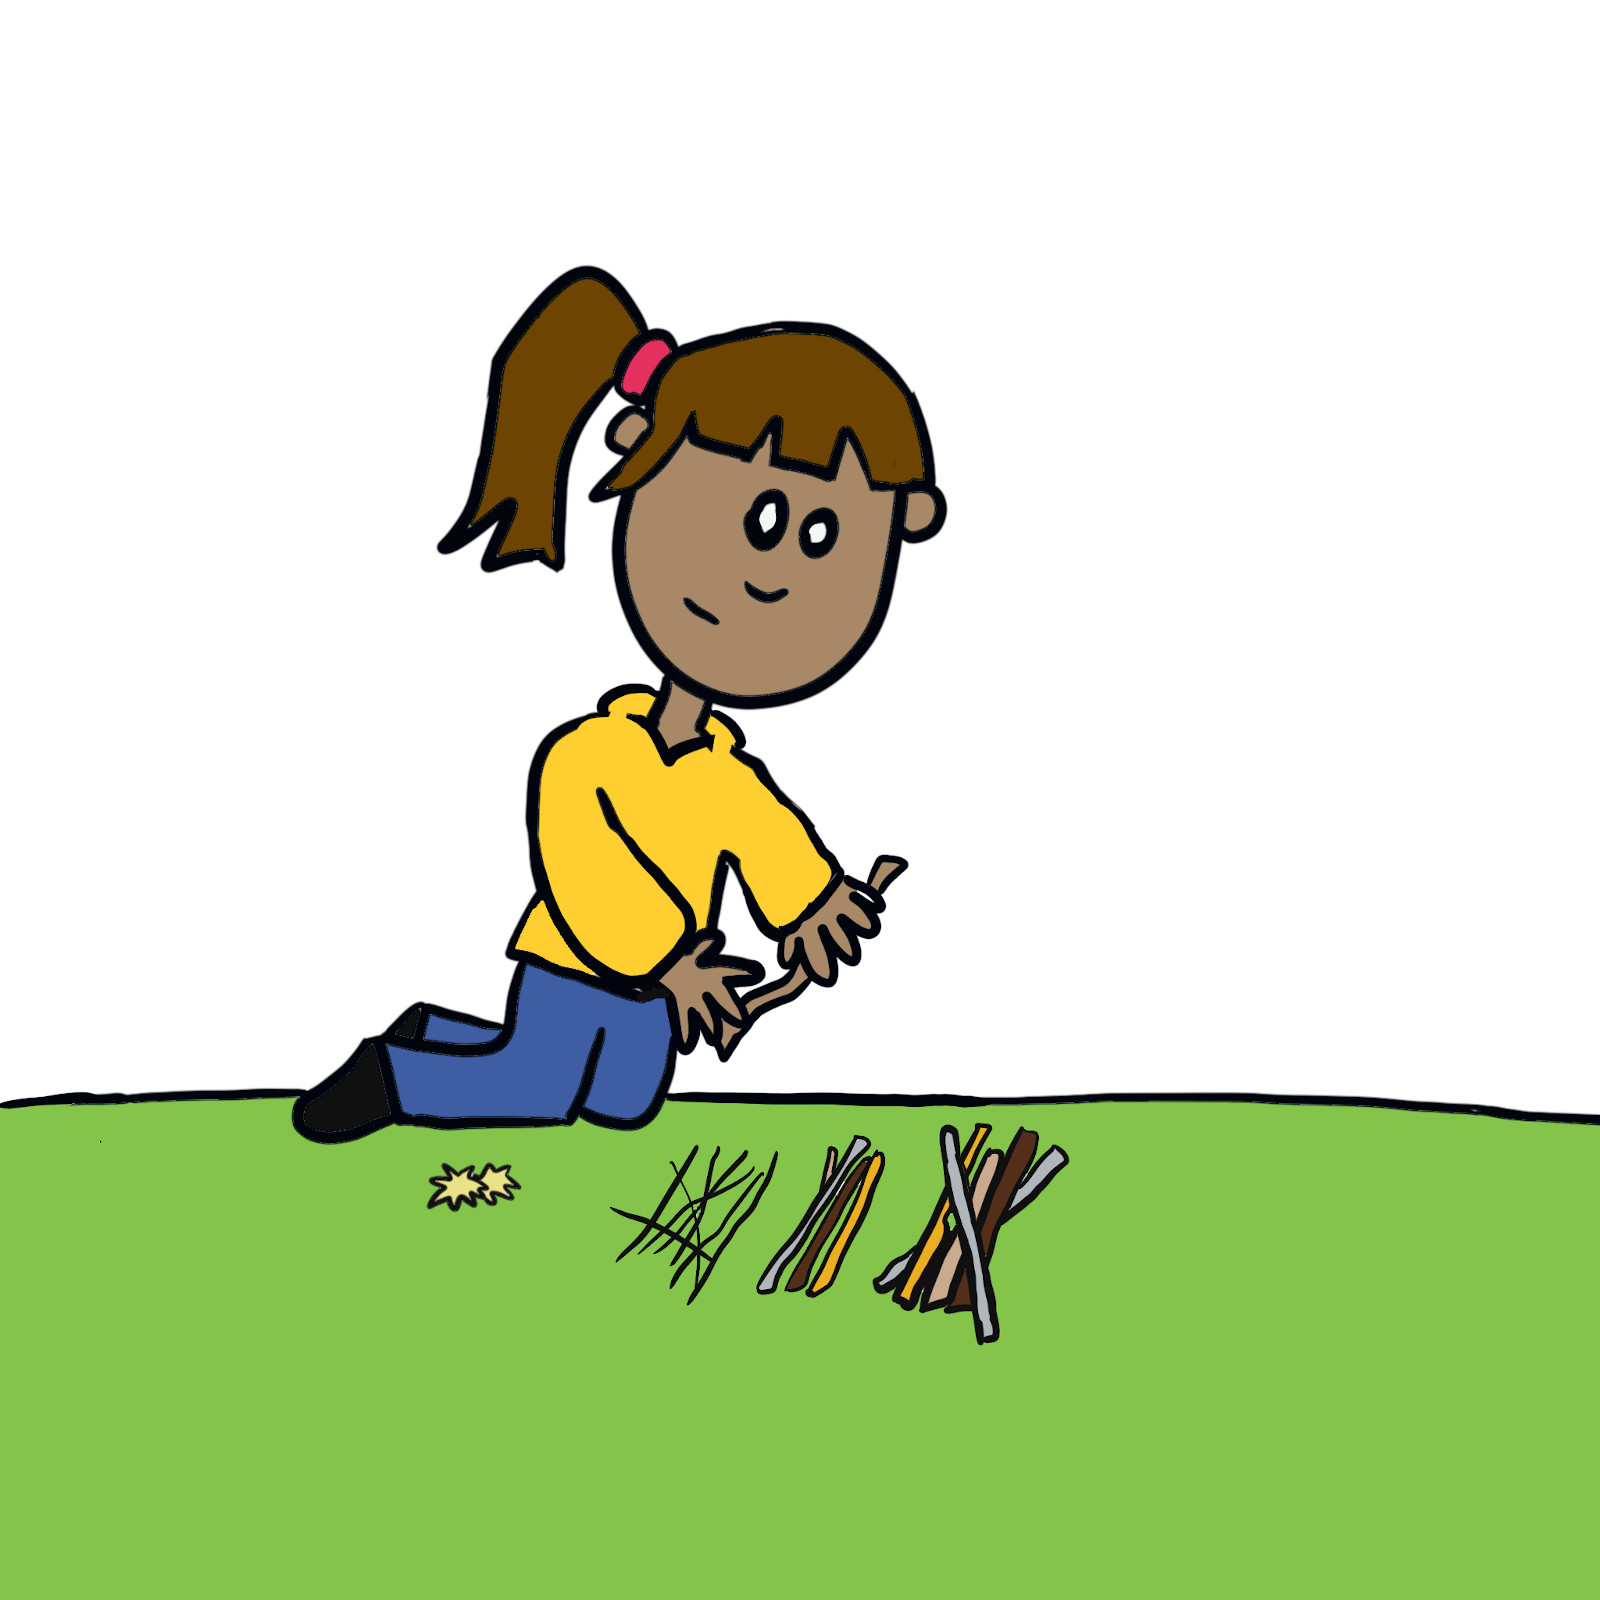 Girl sorting sticks by size